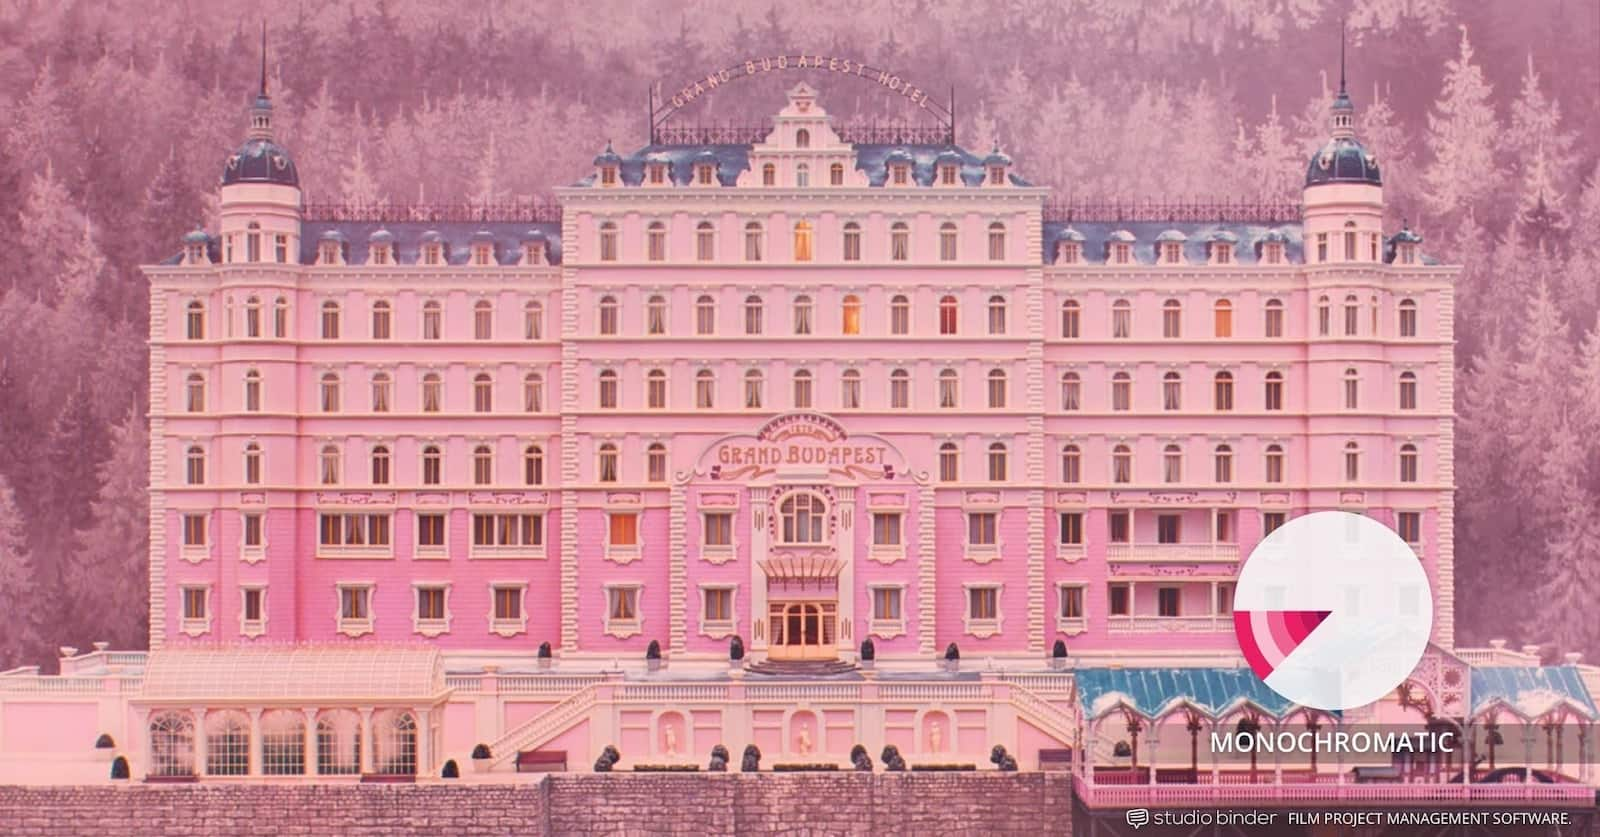 How to Use Color in Film Example - Movie Color Palette - Types of Color Schemes - Monochromatic Color Scheme - Grand Budapest Hotel